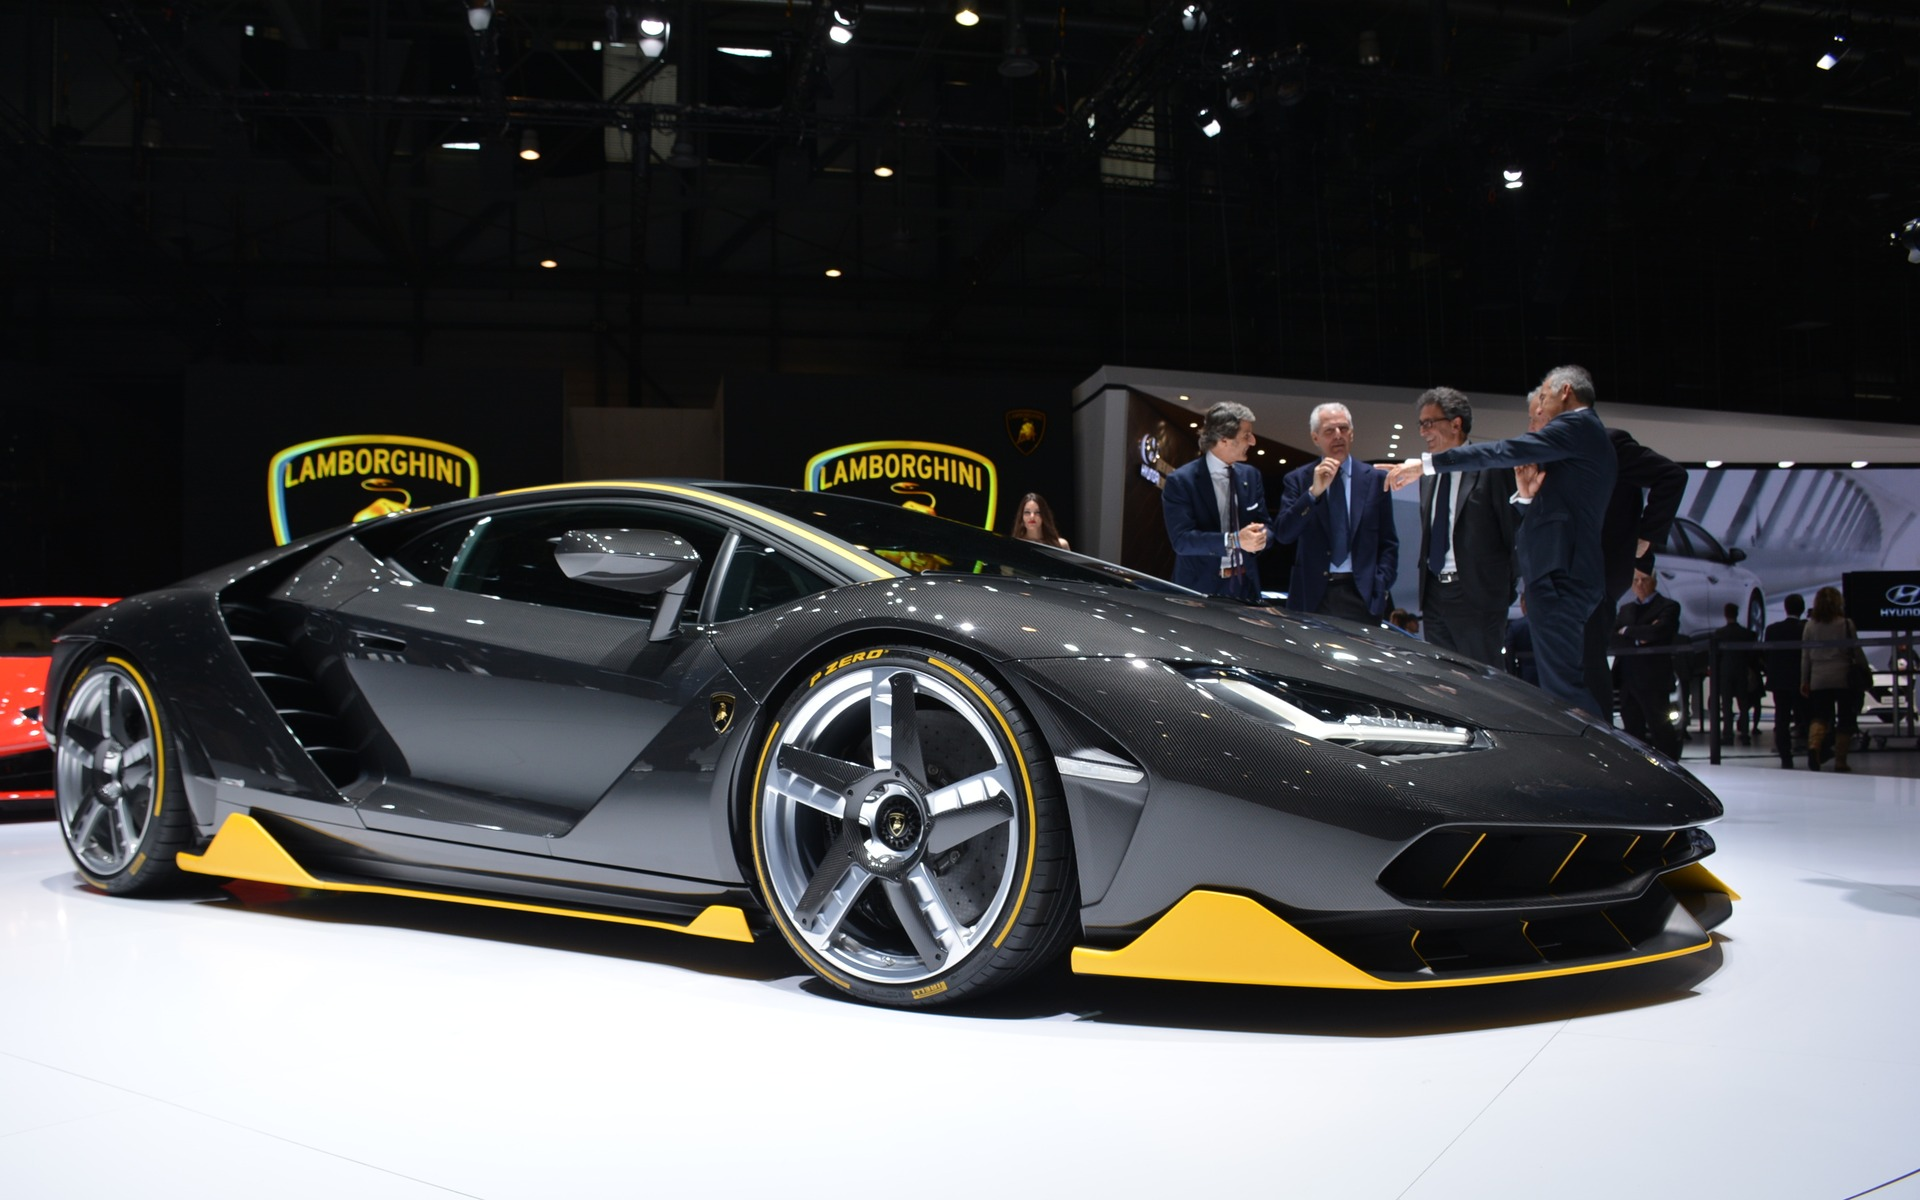 Lamborghini Centenario: 100 Years Old And Still Going Strong